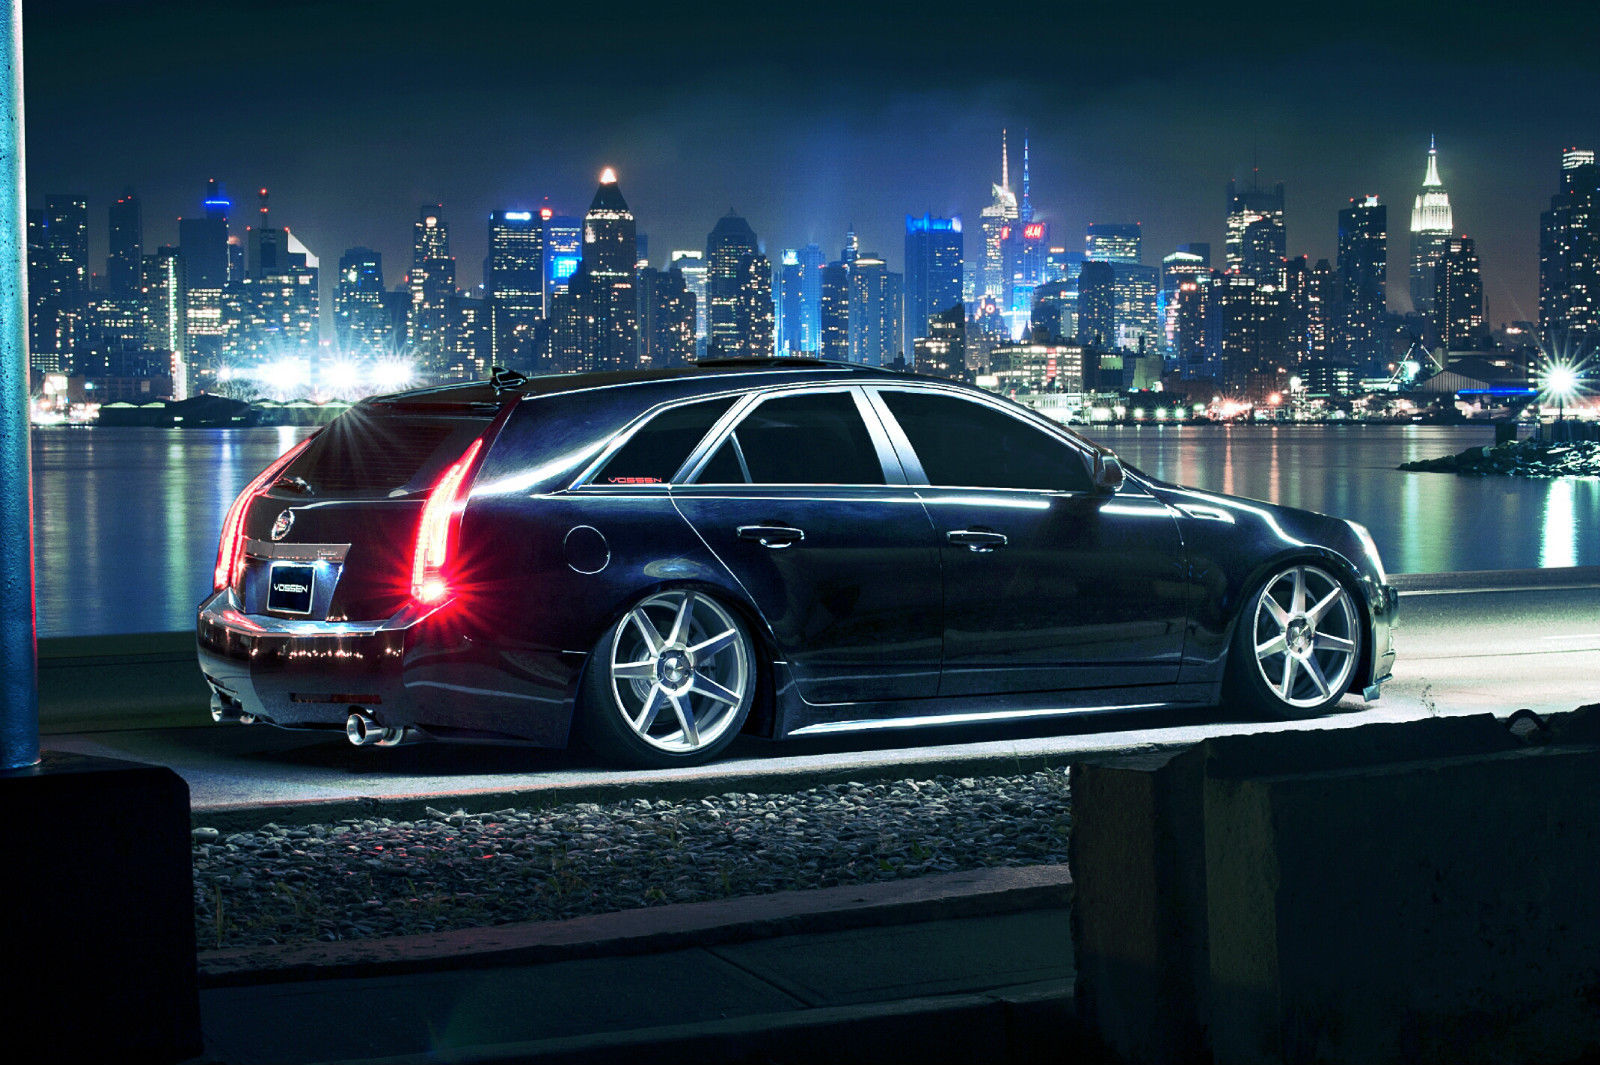 2011 Cadillac Cts Wagon Bagged For Sale